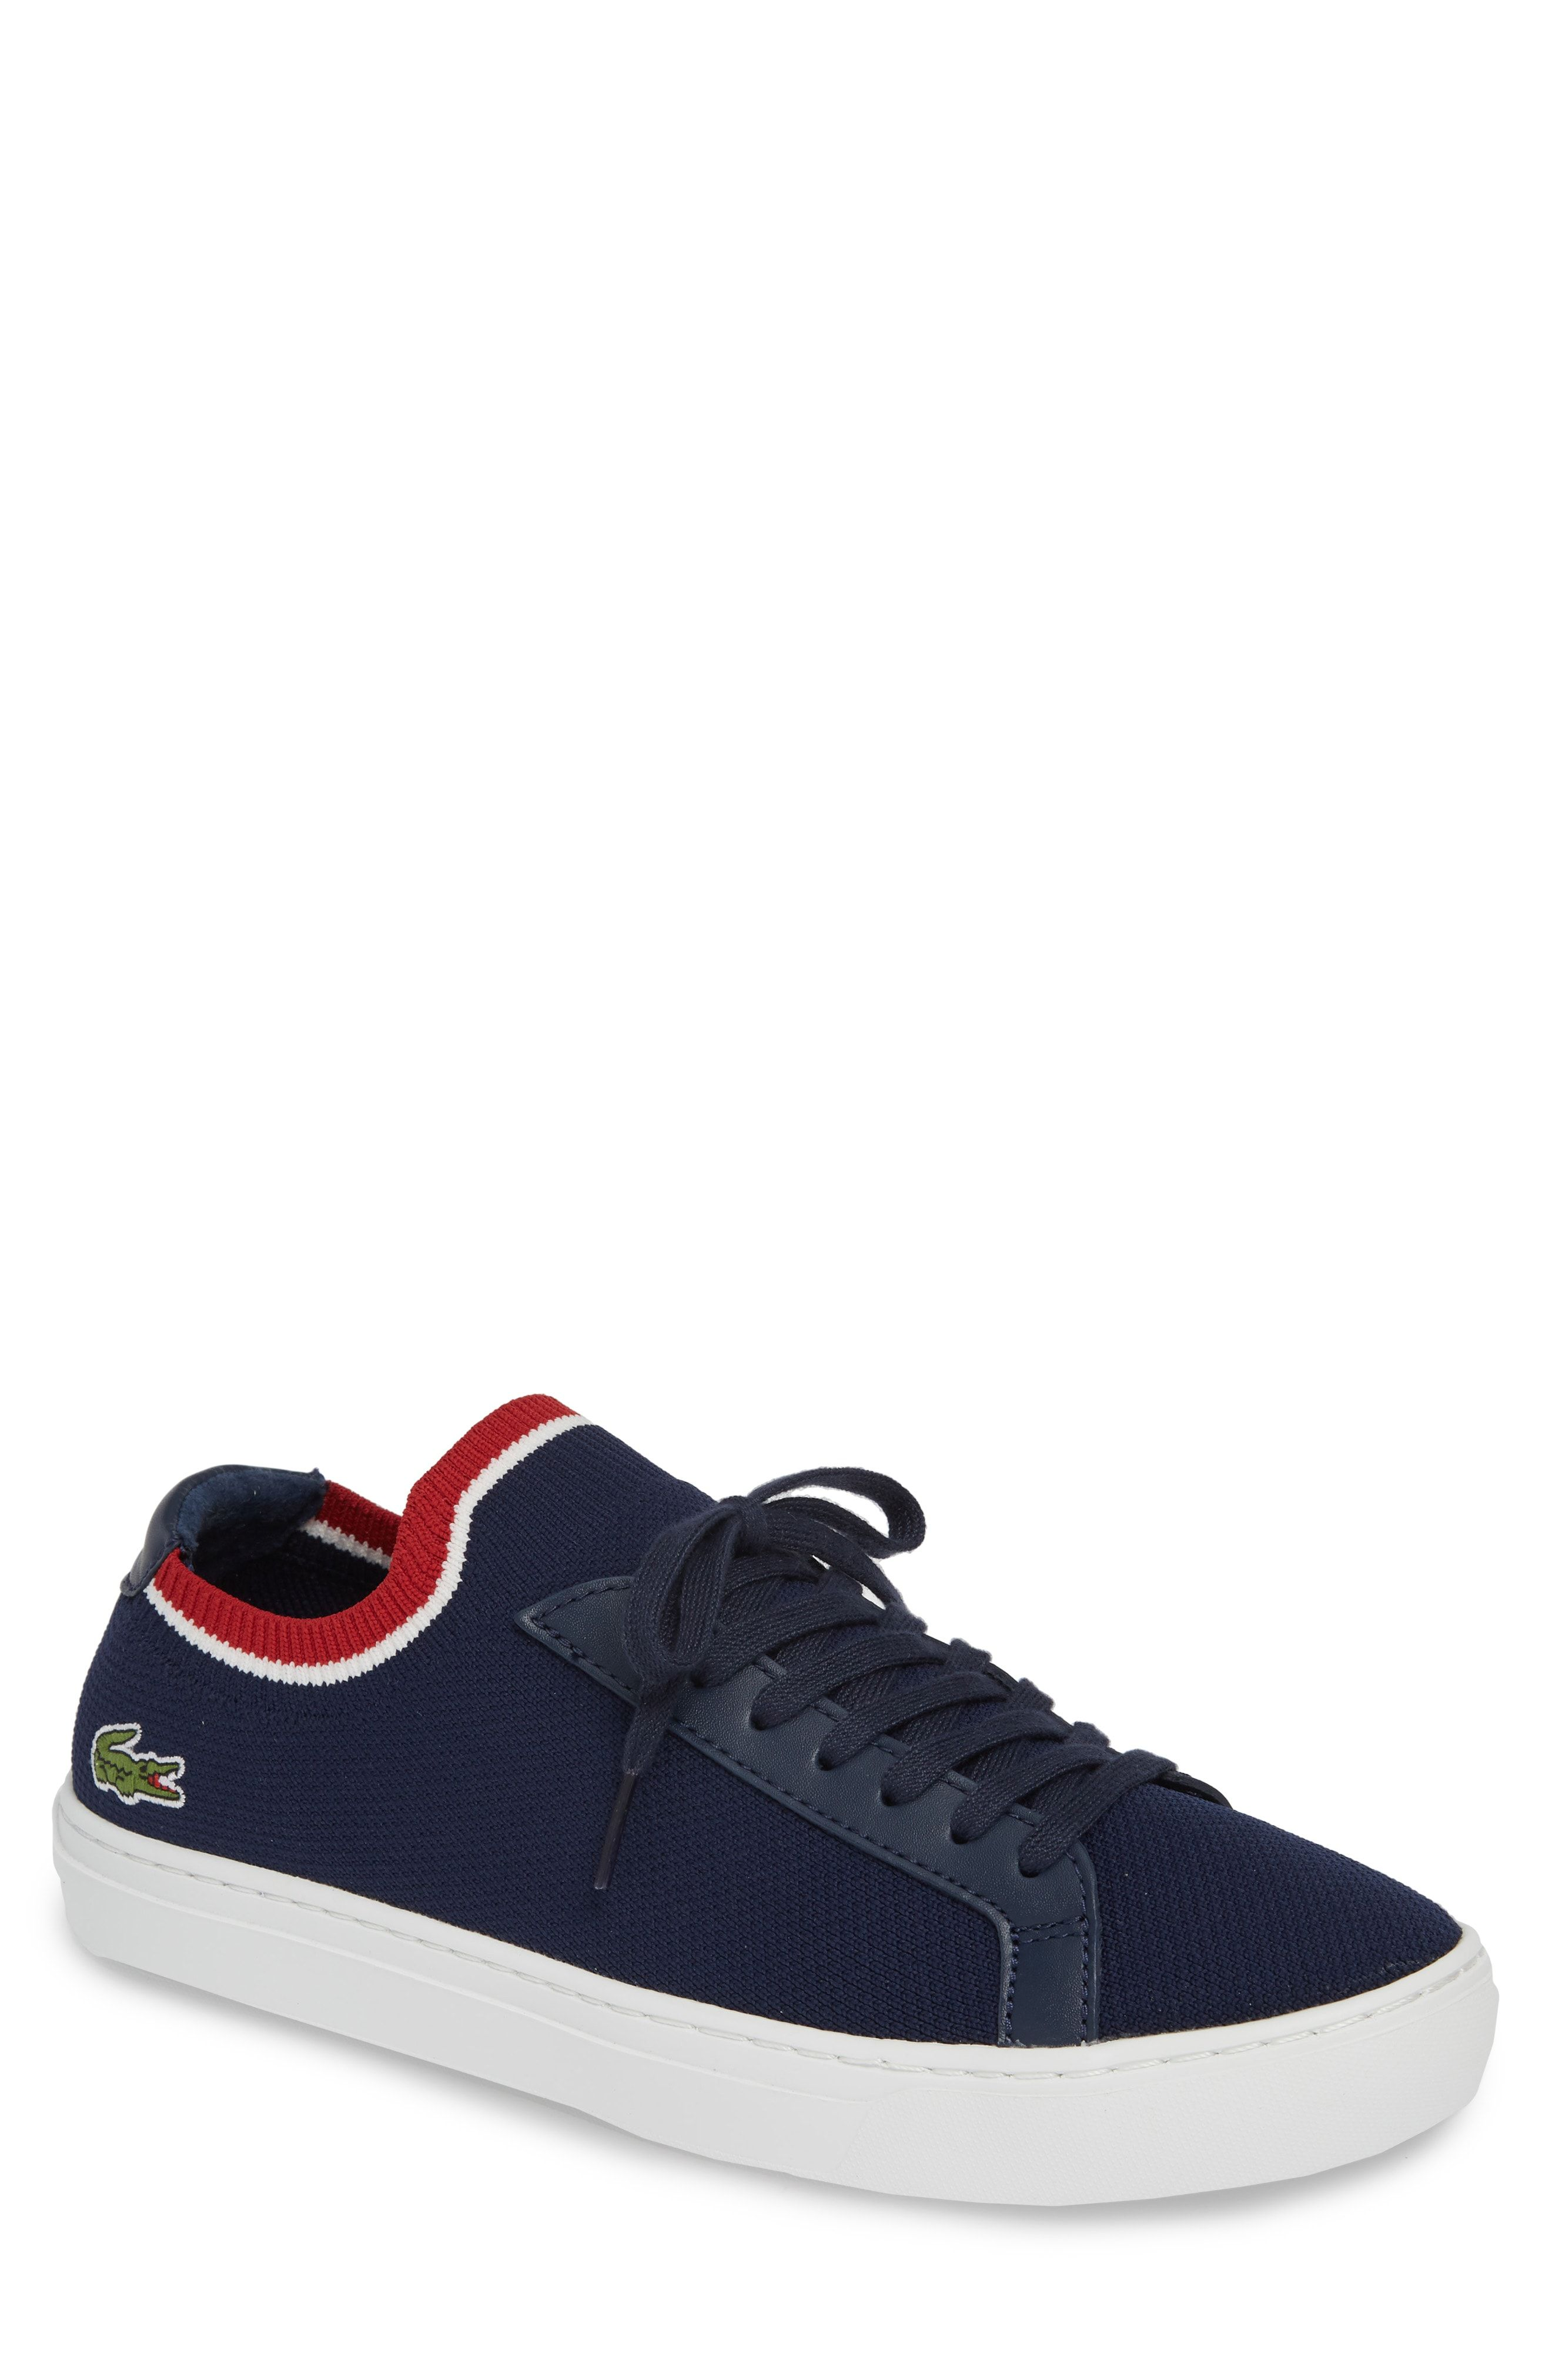 83efaa8c3 LACOSTE PIQUE KNIT SNEAKER.  lacoste  shoes